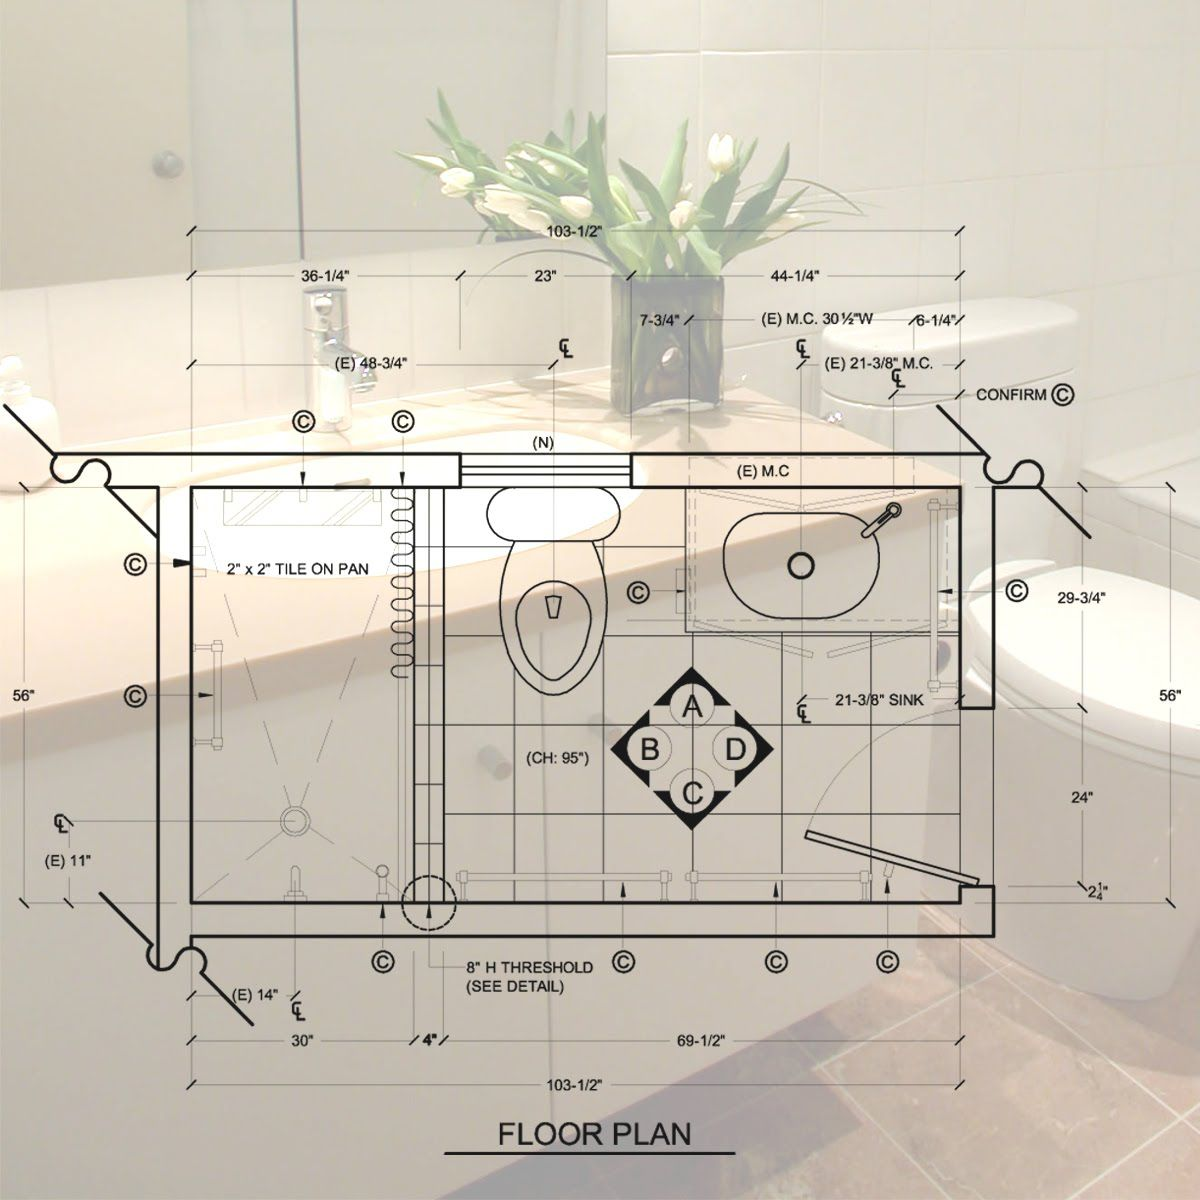 C L K Design Studio Standard 5 39 X 8 39 Bathroom Design Construction Document Dream Home